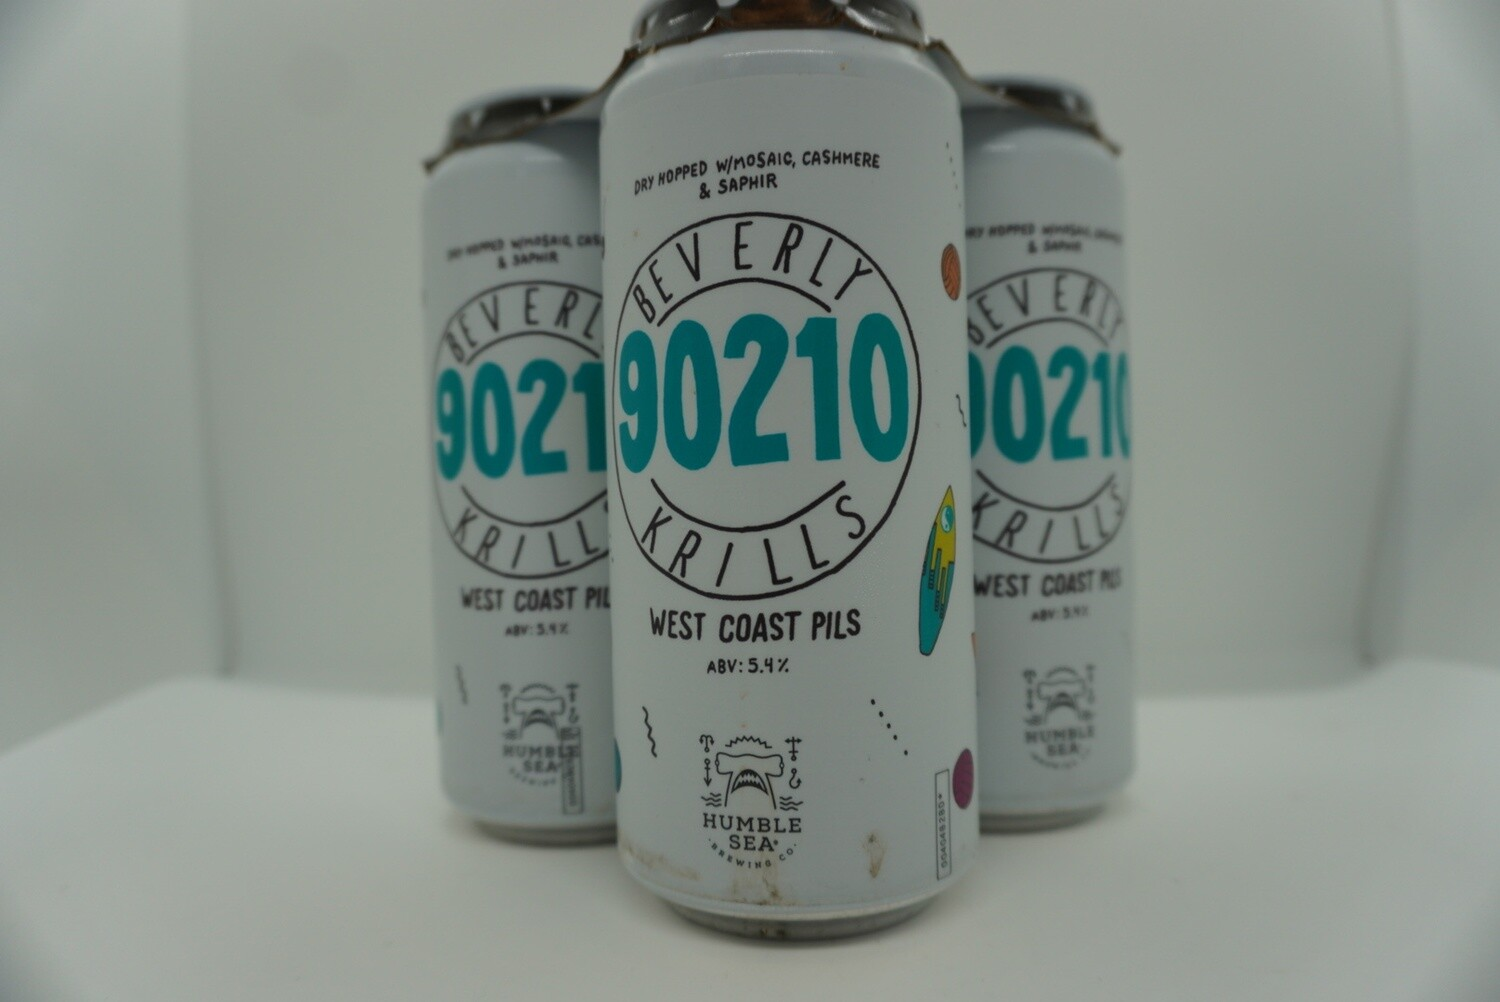 Humble Sea - Beverly Krills - West Coast Pilsner - 5.4% ABV - 4 Pack